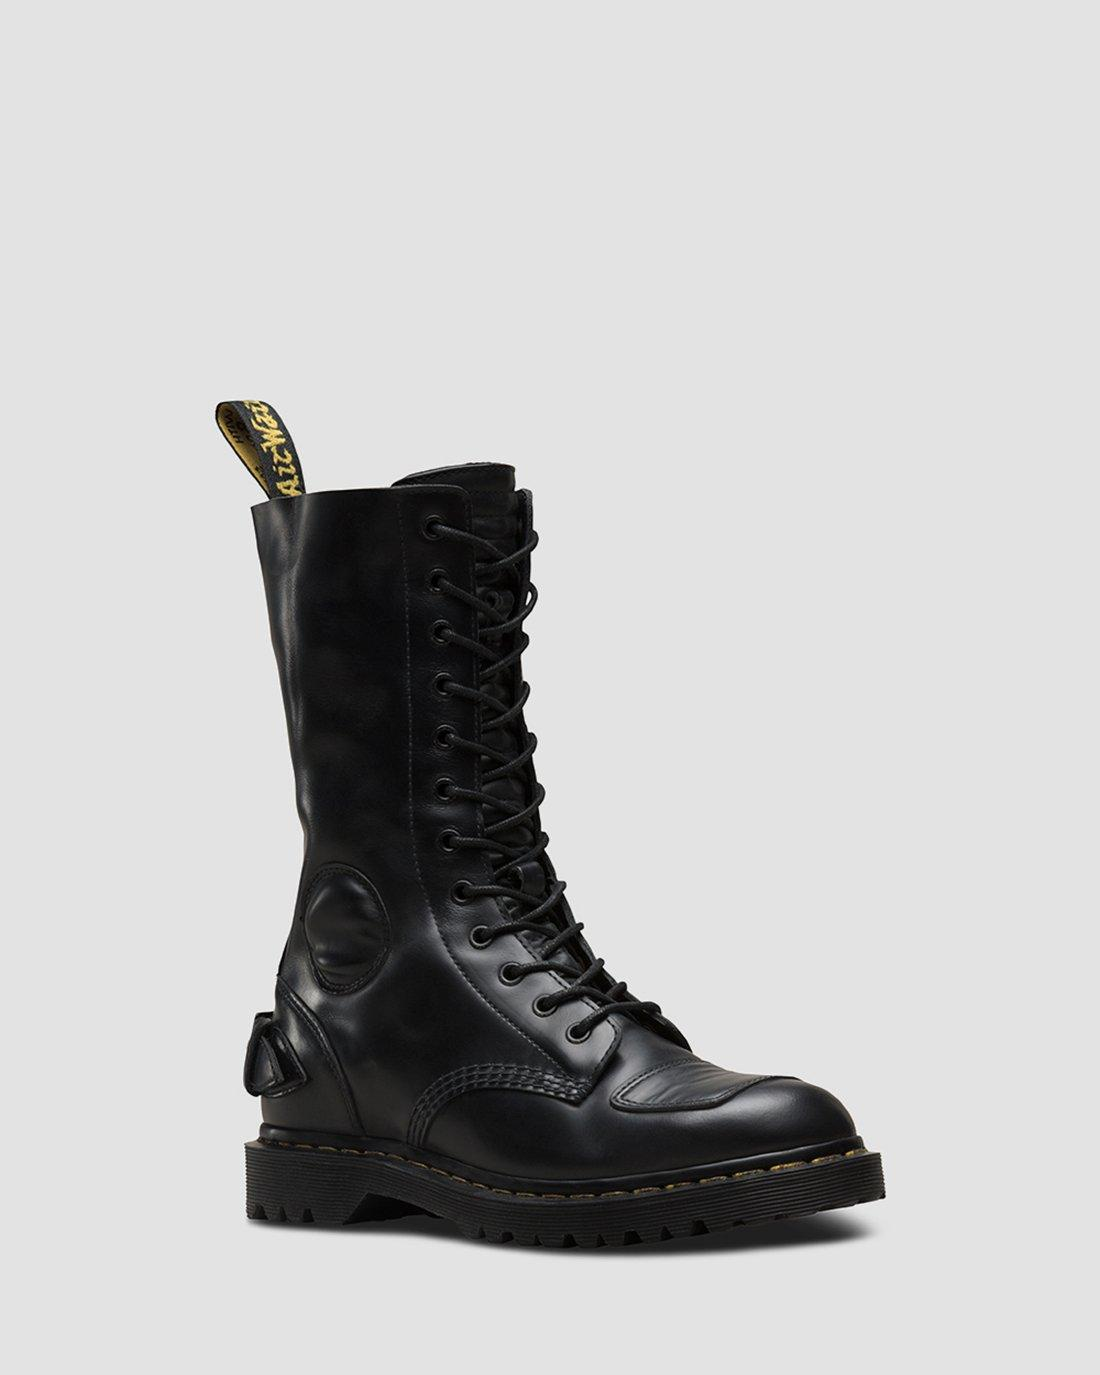 Dr. Martens Milled Smooth Black ankle boots 1460